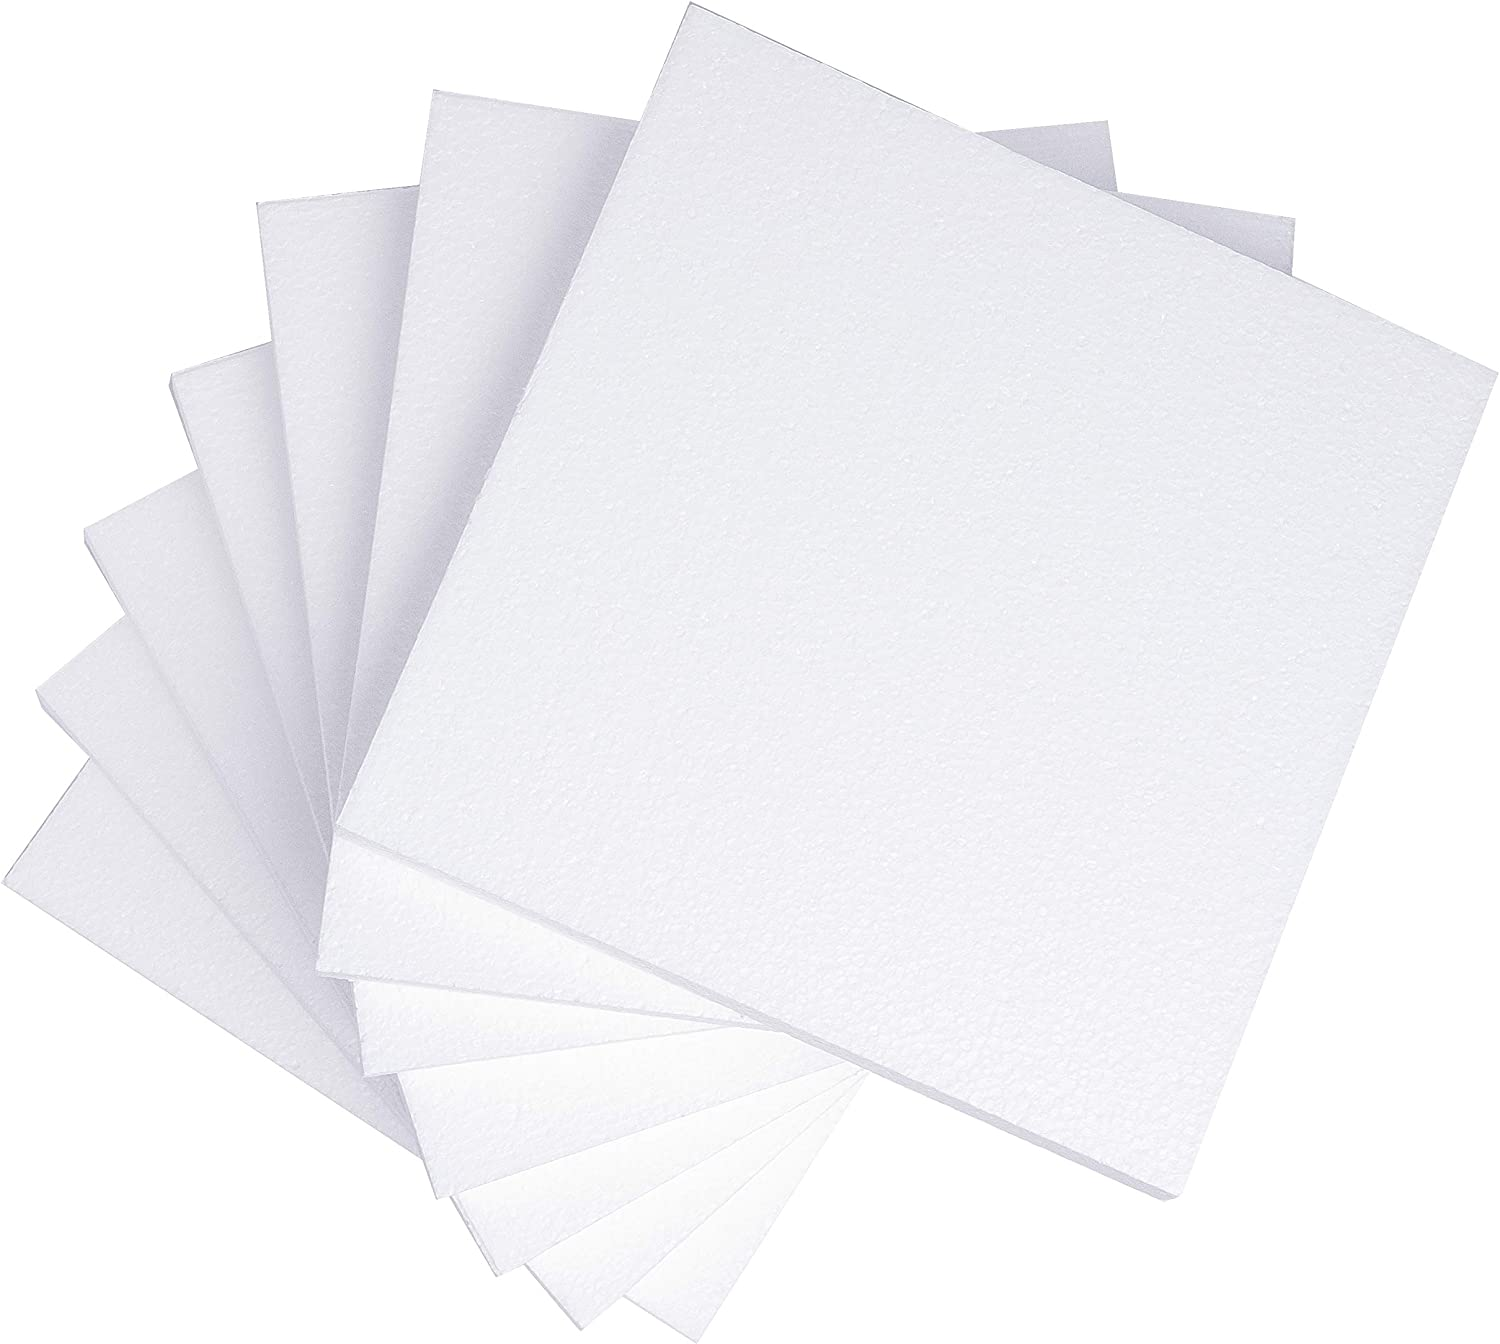 Silverlake Craft Foam Block - 7 Pack of 10x10x1 EPS Polystyrene Sheet for Crafting, Modeling, Art Projects and Floral Arrangements - Sculpting Panels for DIY School & Home Art Projects